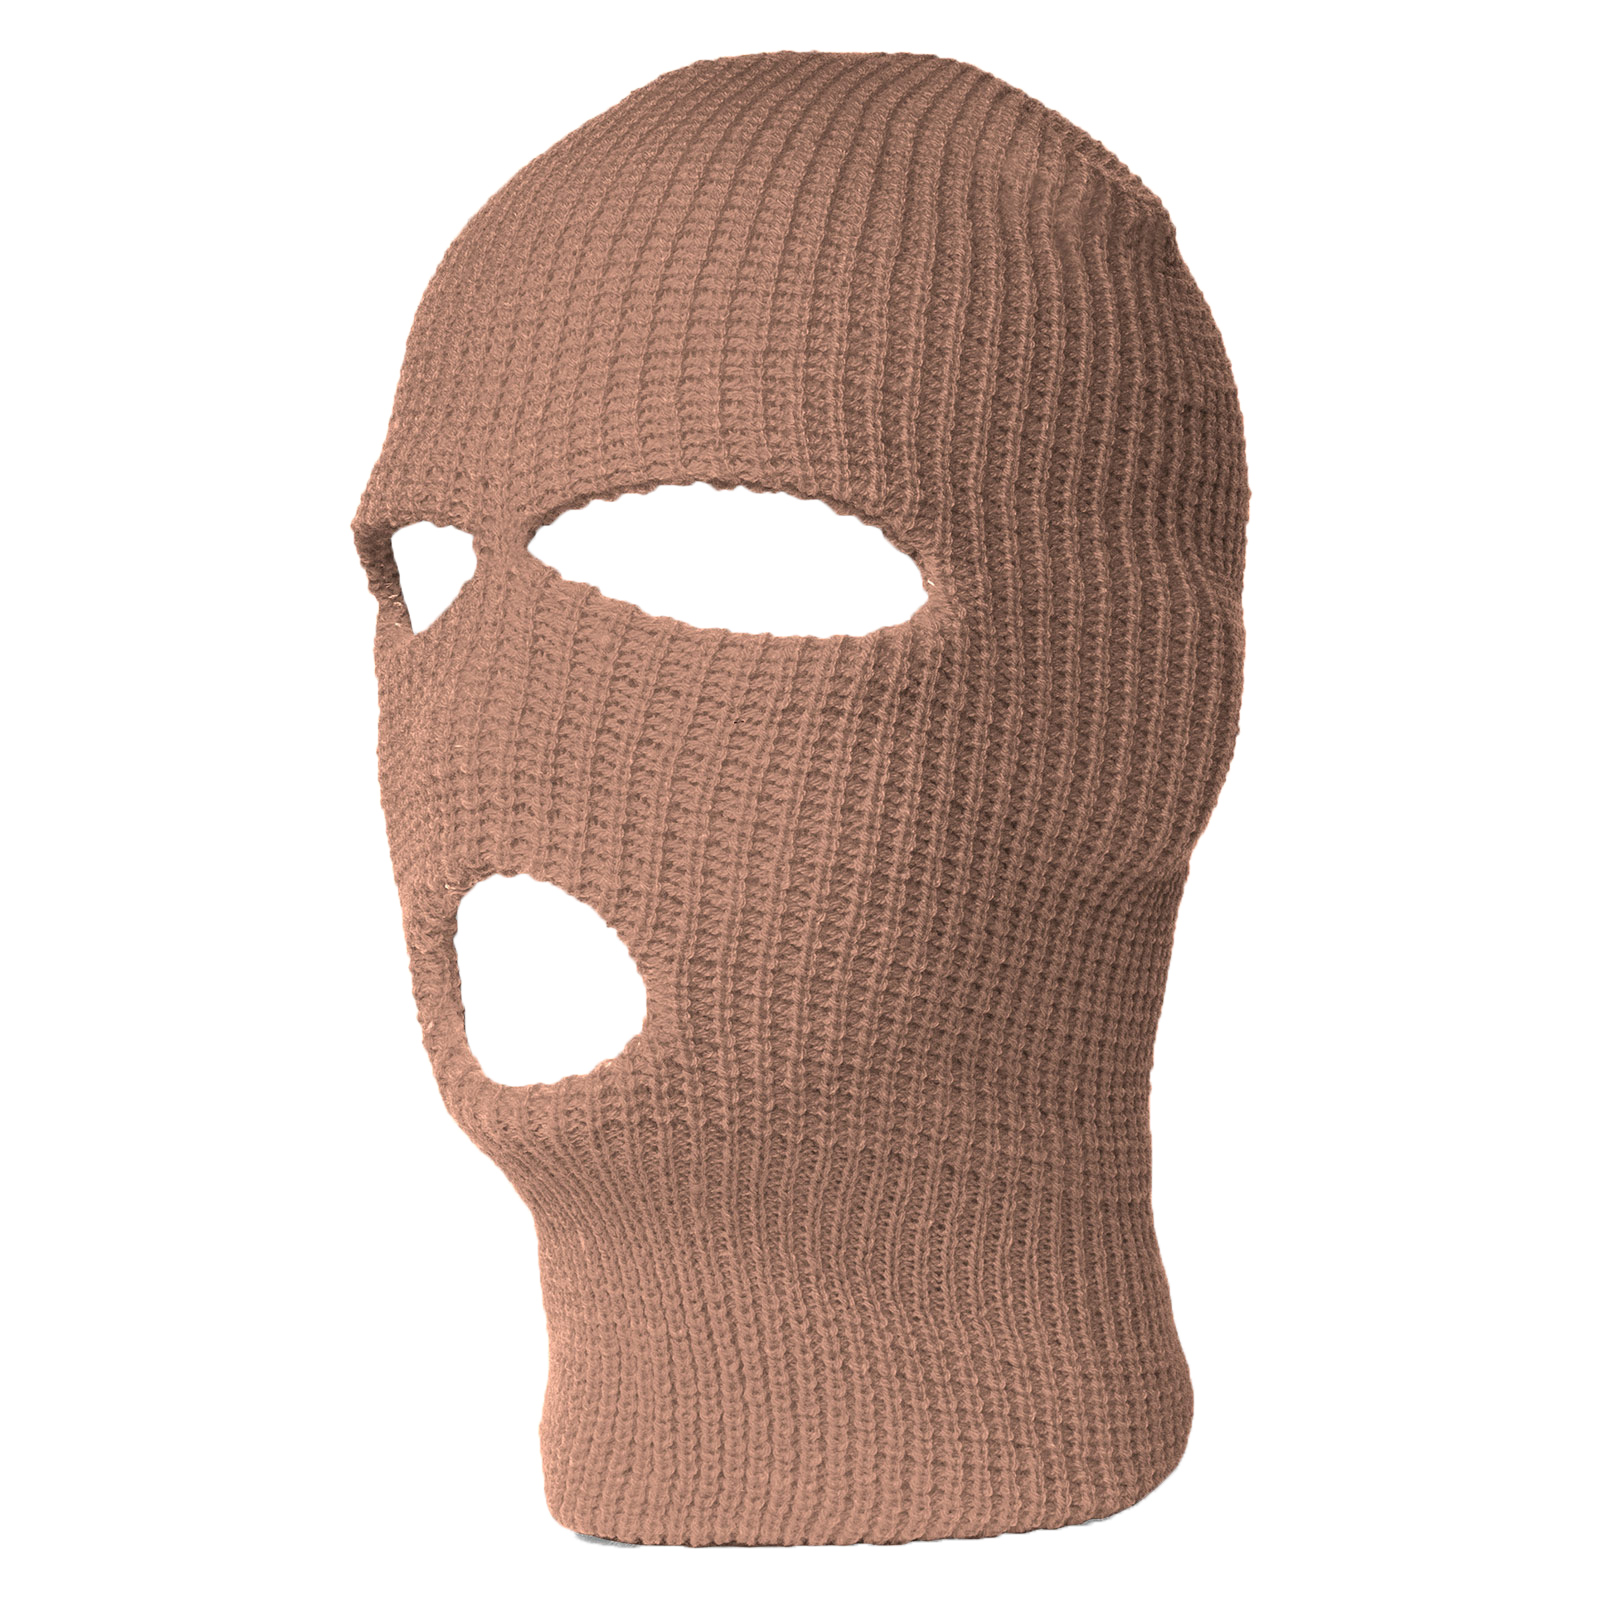 3 Hole Ski Mask Balaclava, Khaki 1pc by